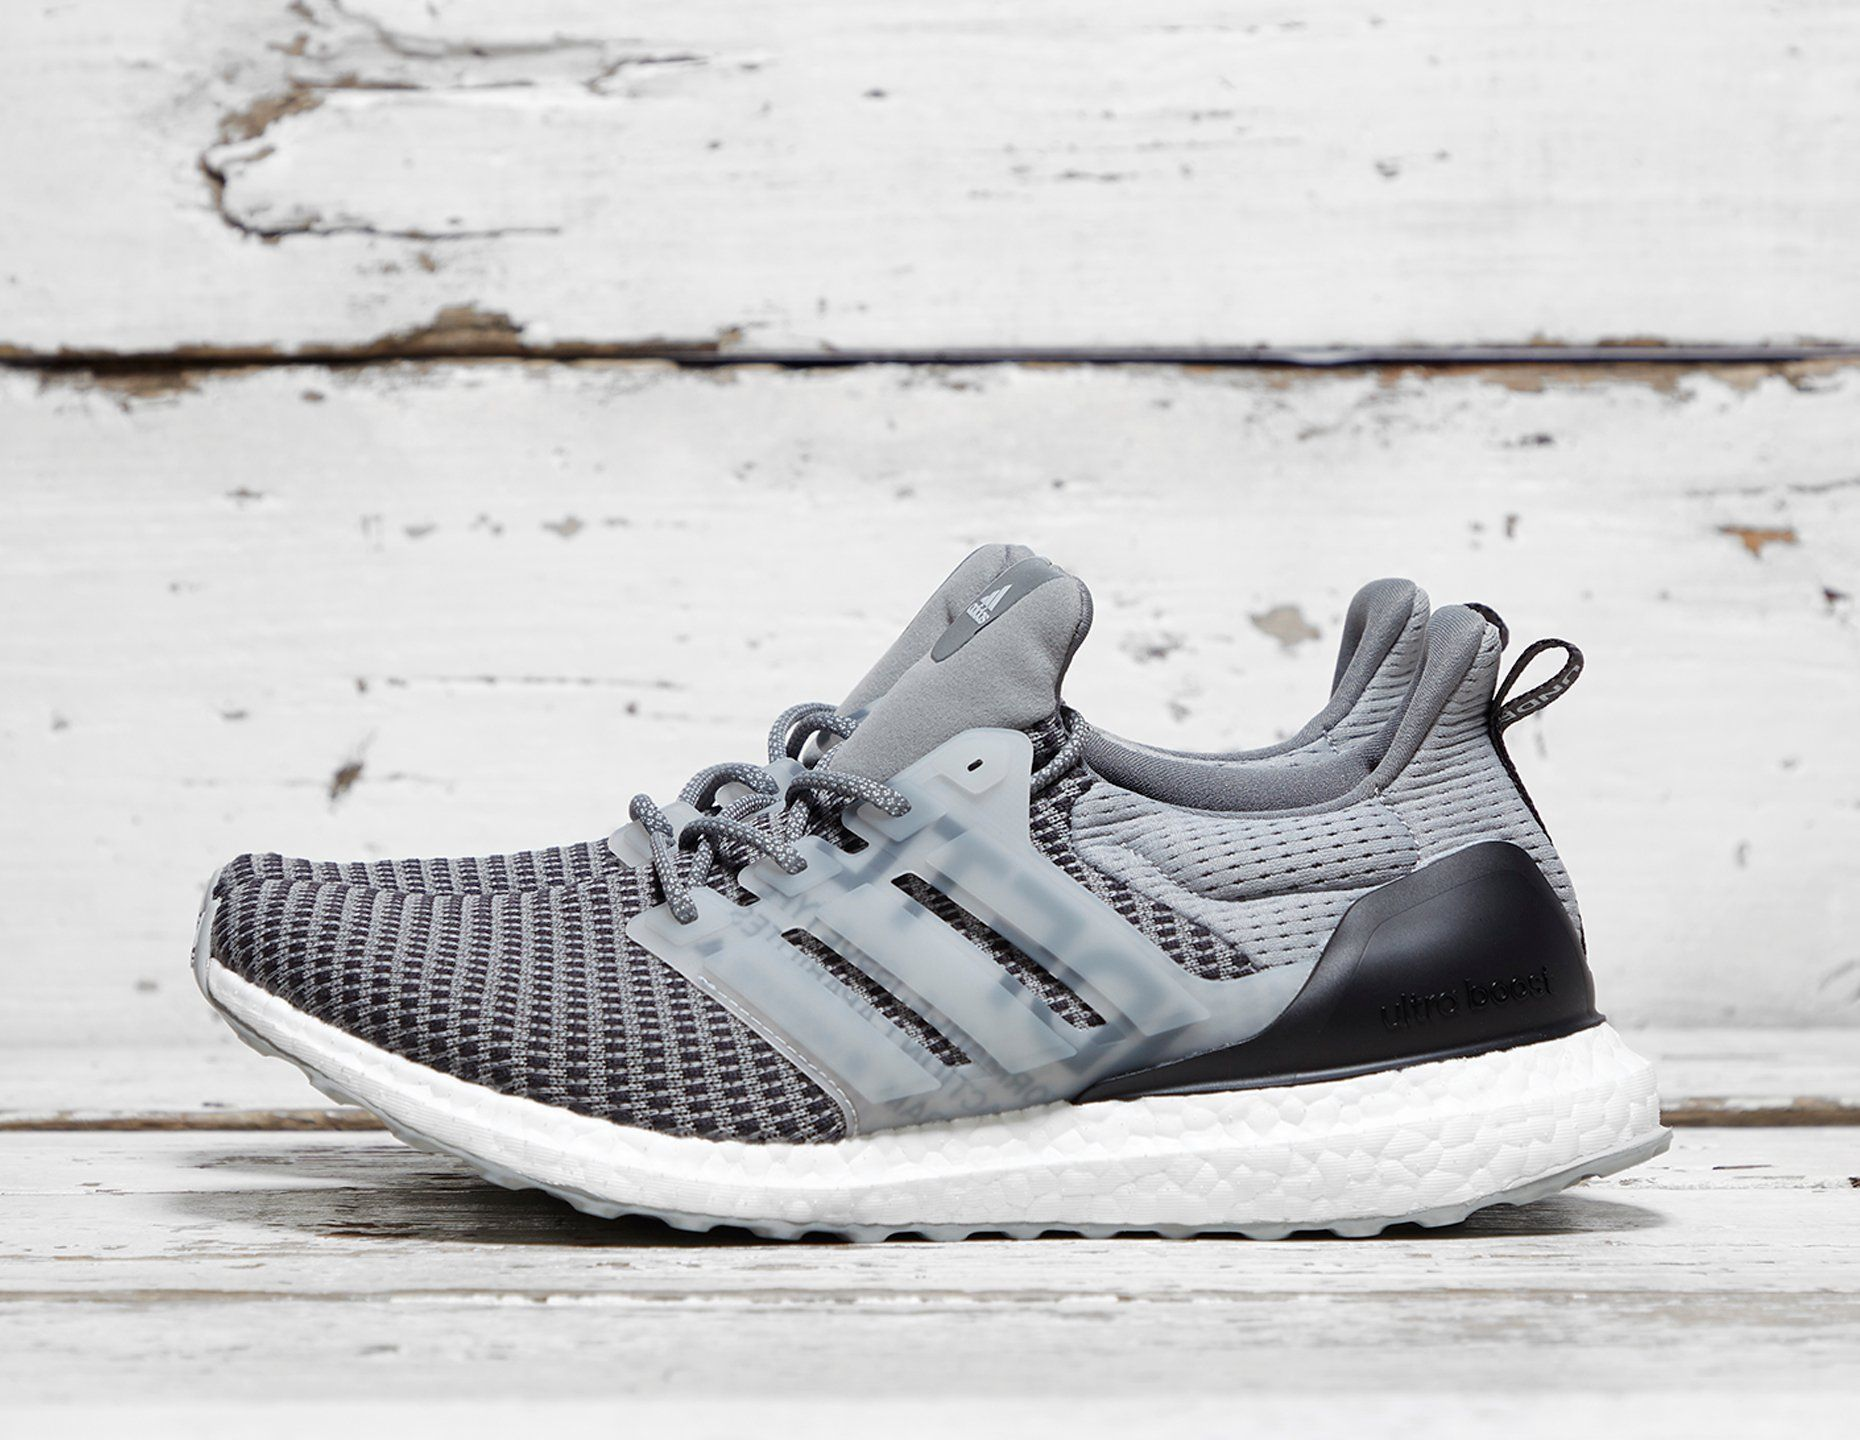 7fcc8d8d0f4ff adidas x UNDEFEATED Ultra Boost